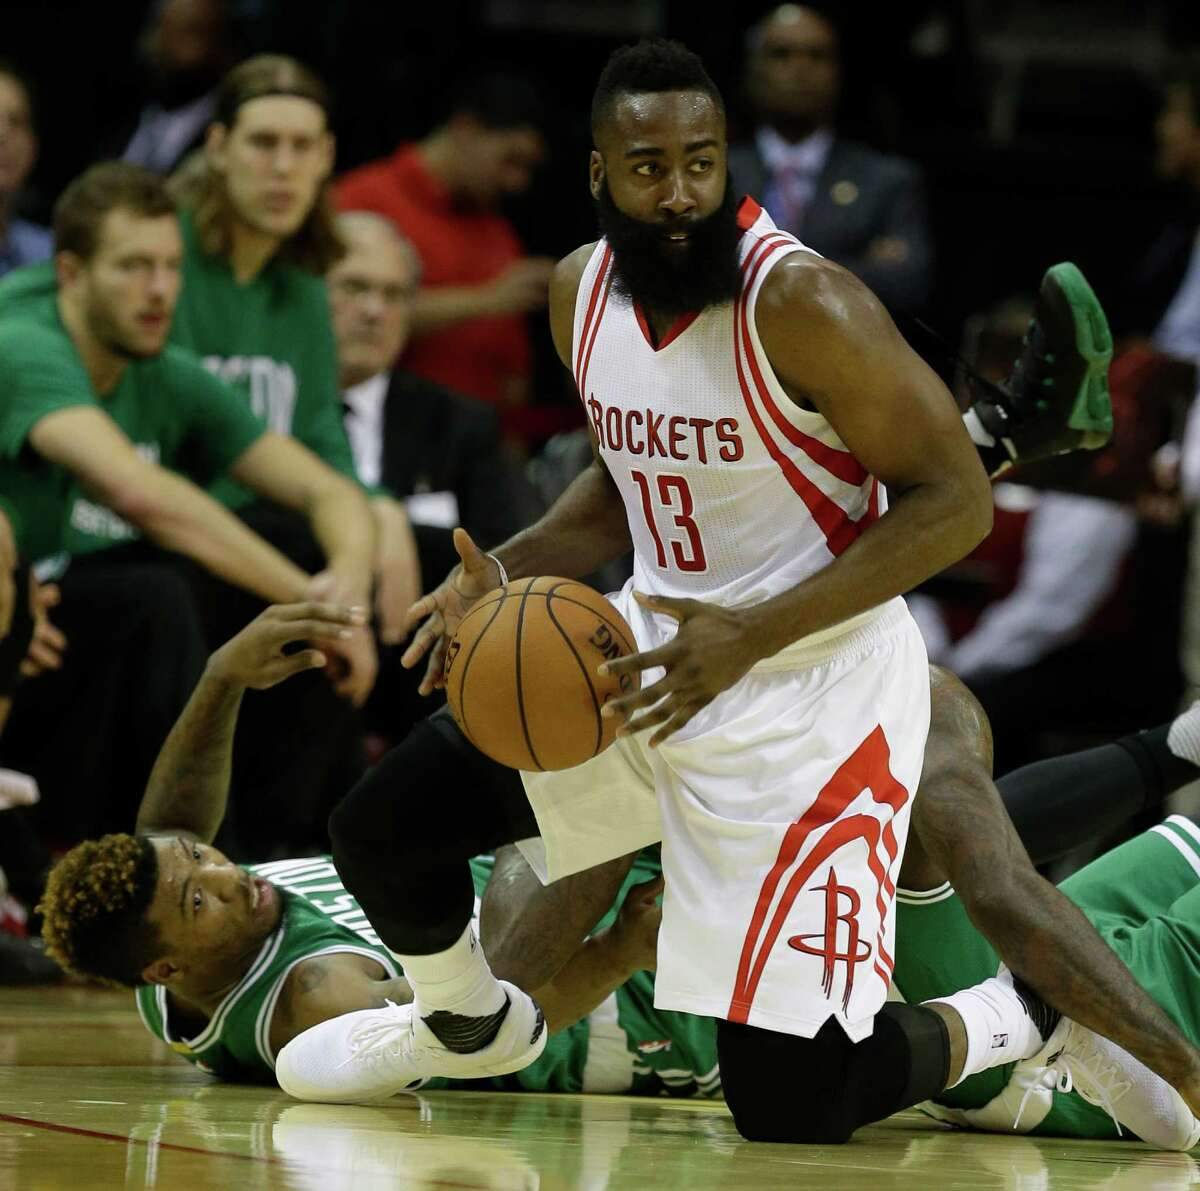 Rockets guard James Harden comes up with ball after getting the better of a floor scramble with the Celtics' Marcus Smart during the first half of Monday's game.